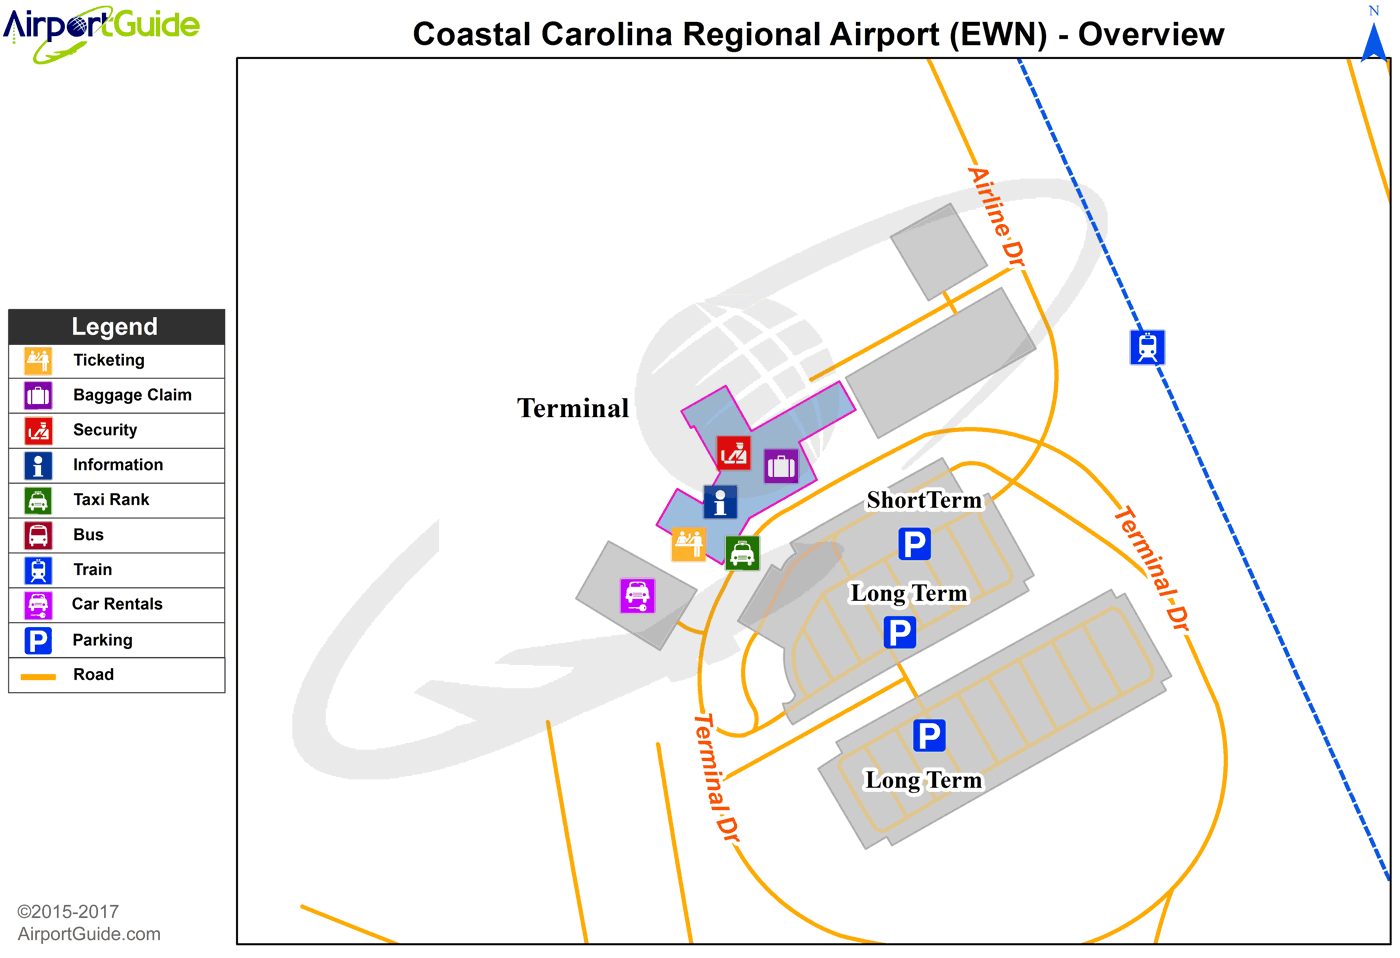 New Bern - Coastal Carolina Regional (EWN) Airport Terminal Map - Overview